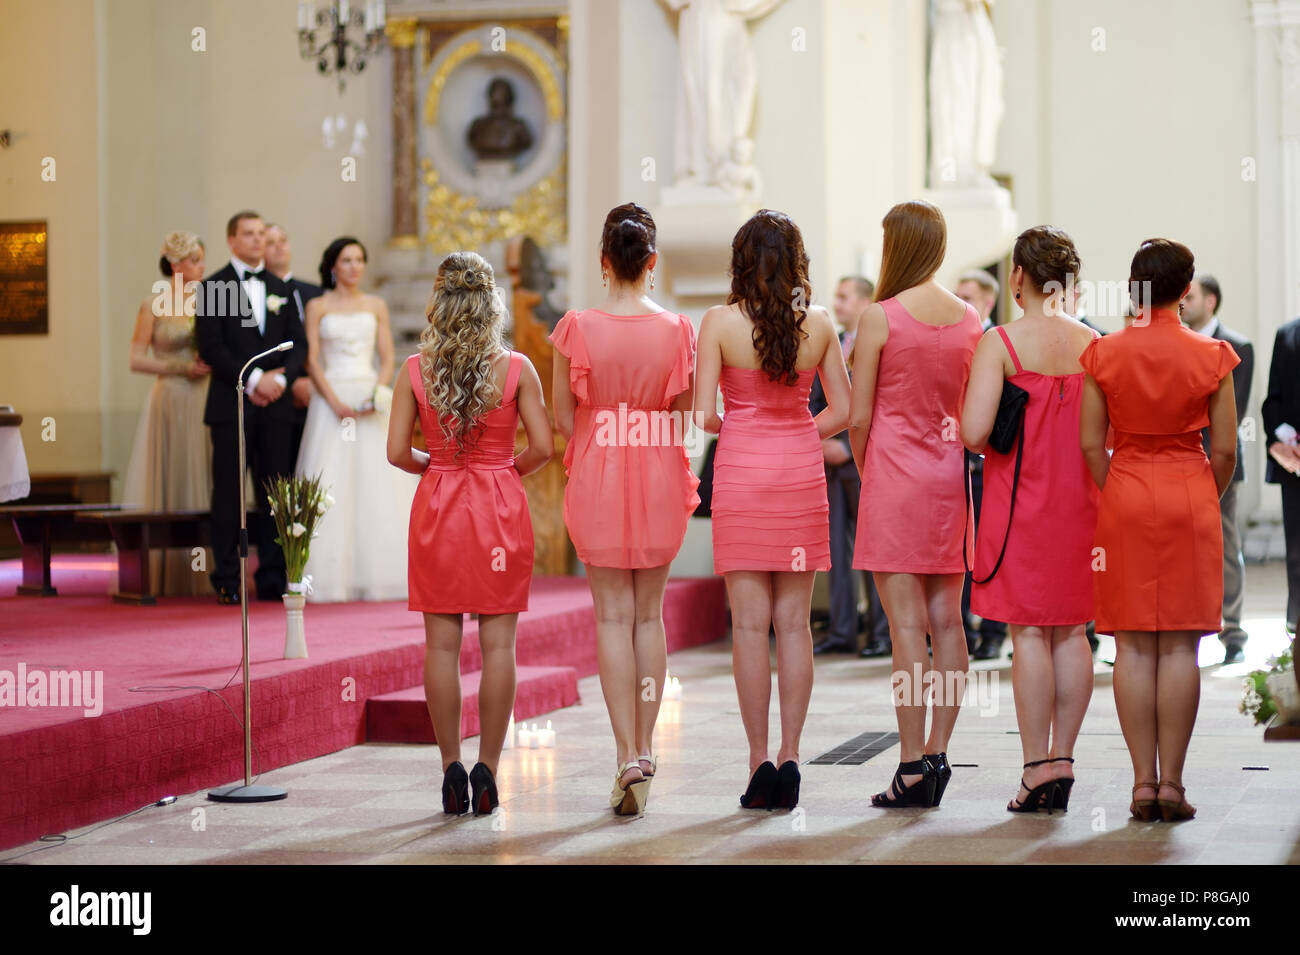 Coral And White Wedding Stock Photos & Coral And White Wedding Stock ...